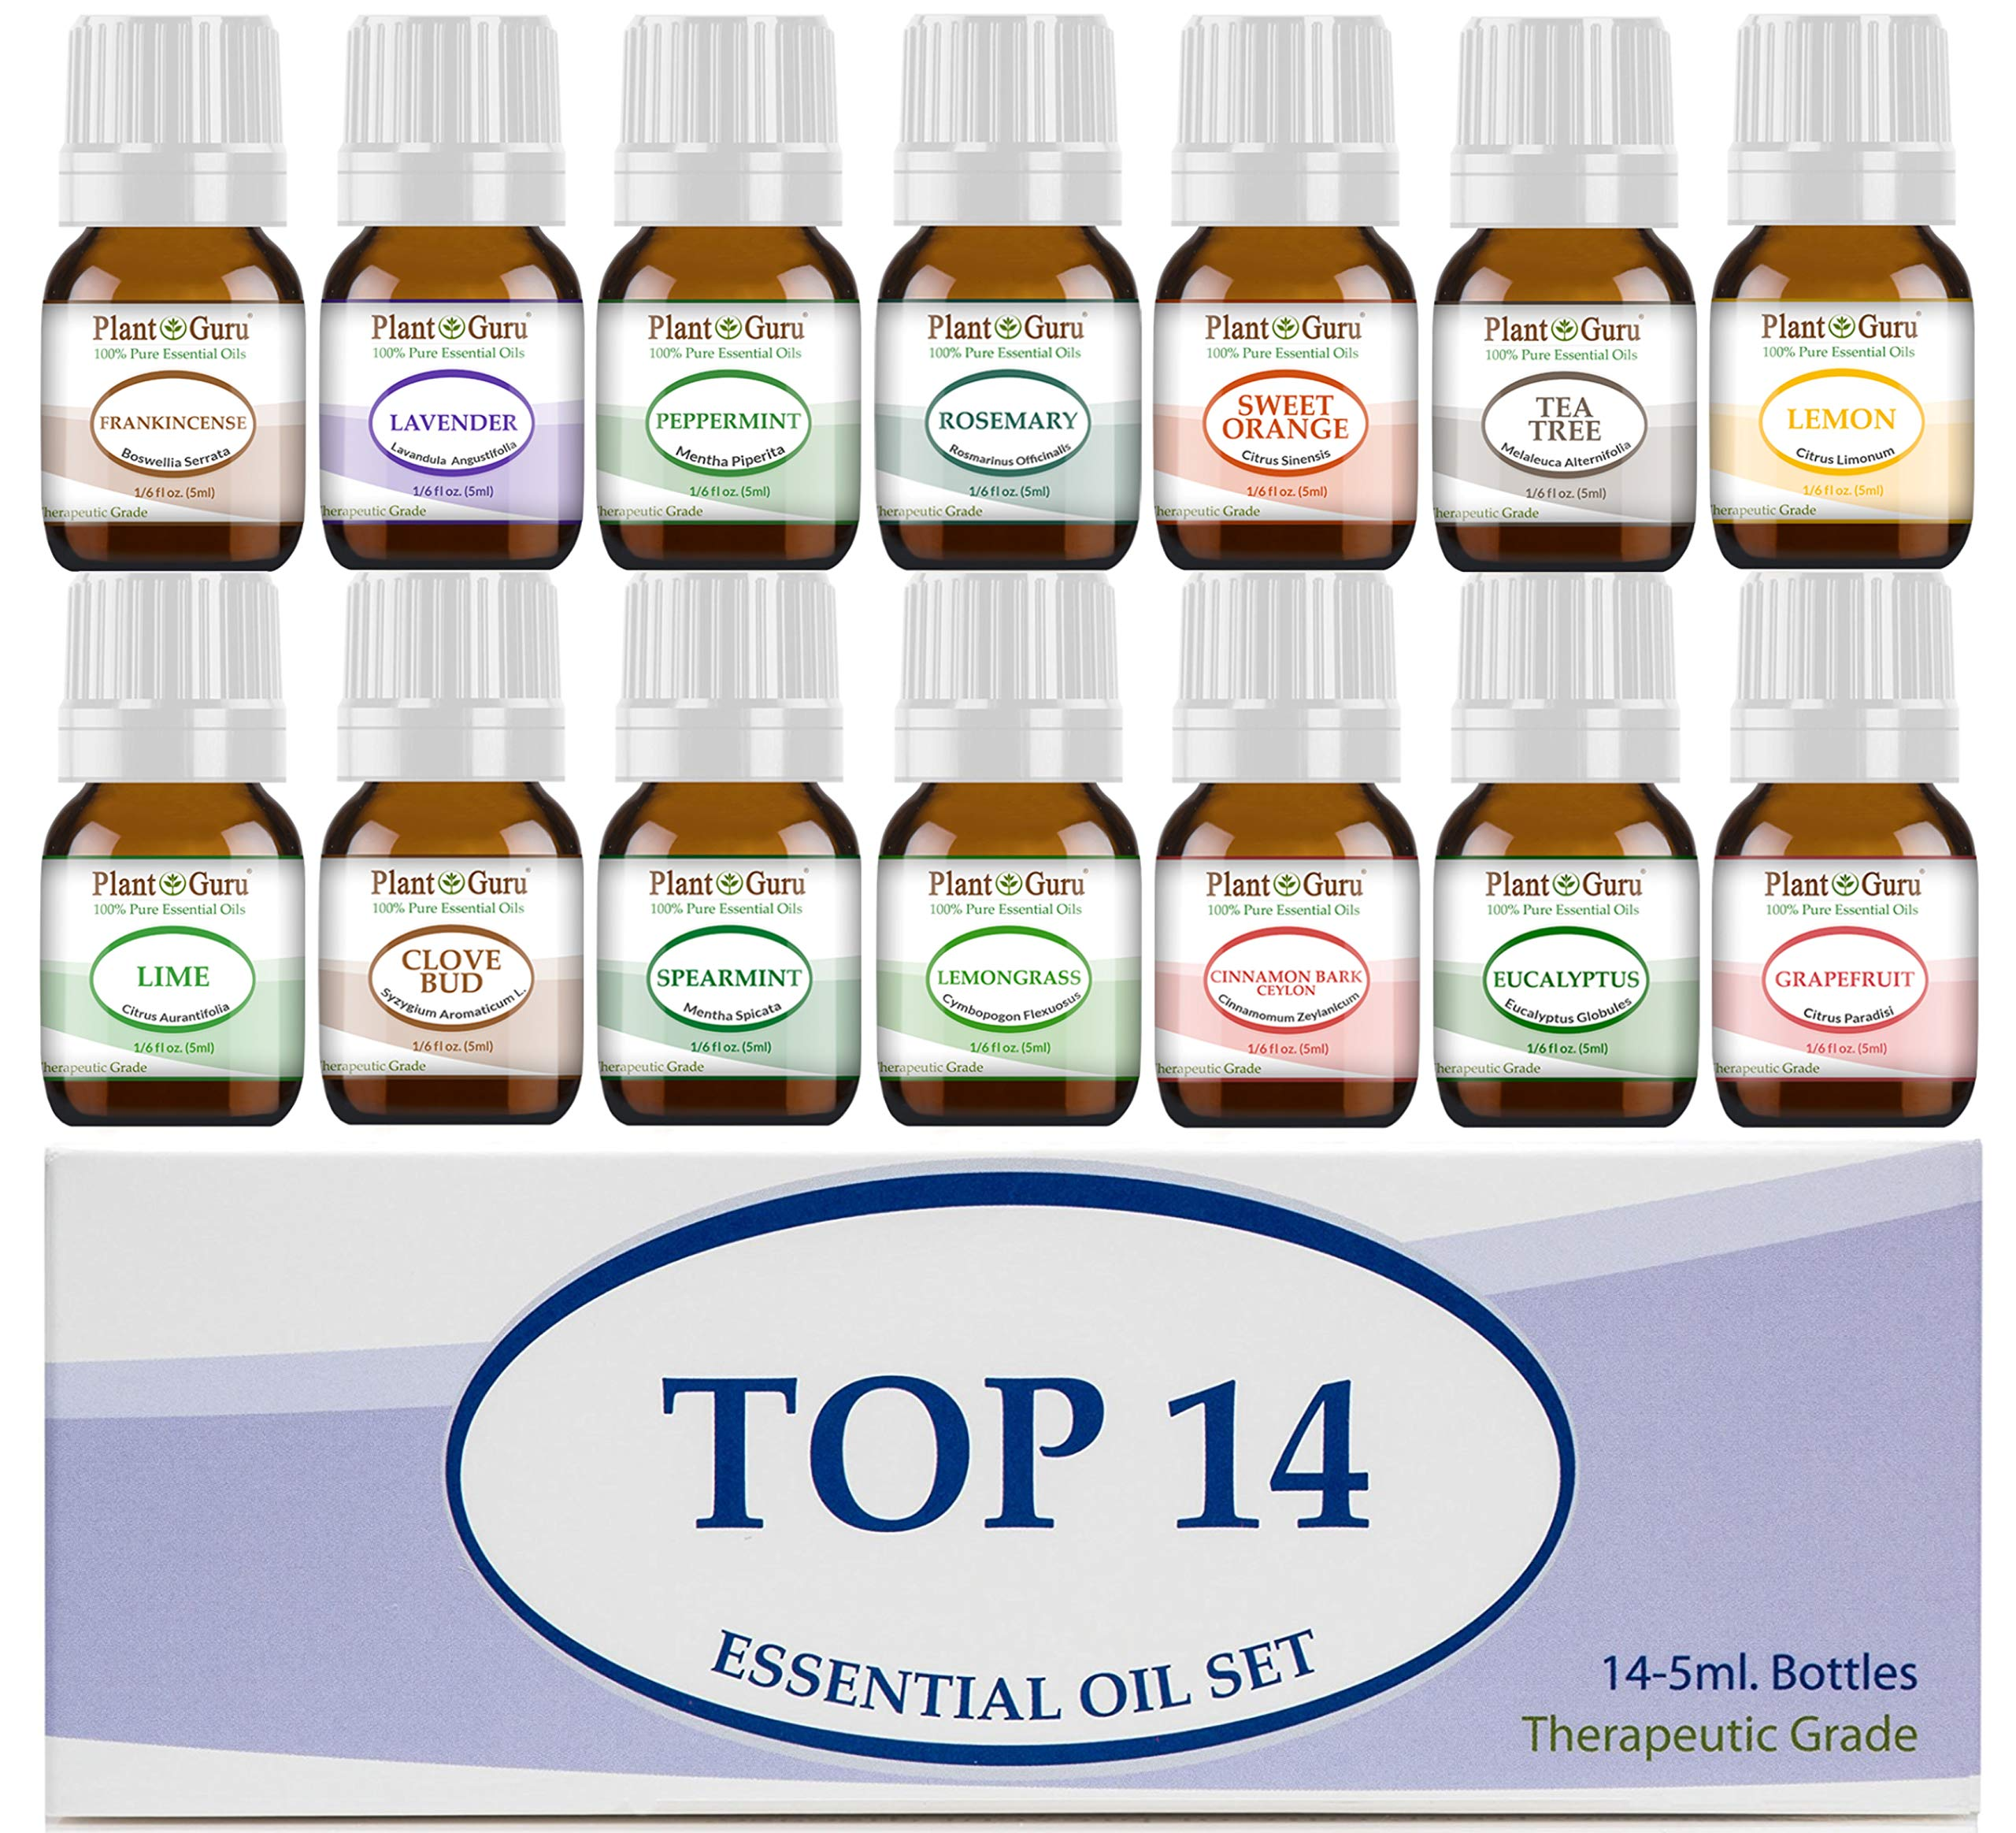 Essential Oil Set 14-5 ml Therapeutic Grade 100% Pure Frankincense, Lavender, Peppermint, Rosemary, Orange, Tea Tree, Eucalyptus, Grapefruit, Lemon, Lime, Clove, Spearmint, Lemongrass, Cinnamon by Plant Guru